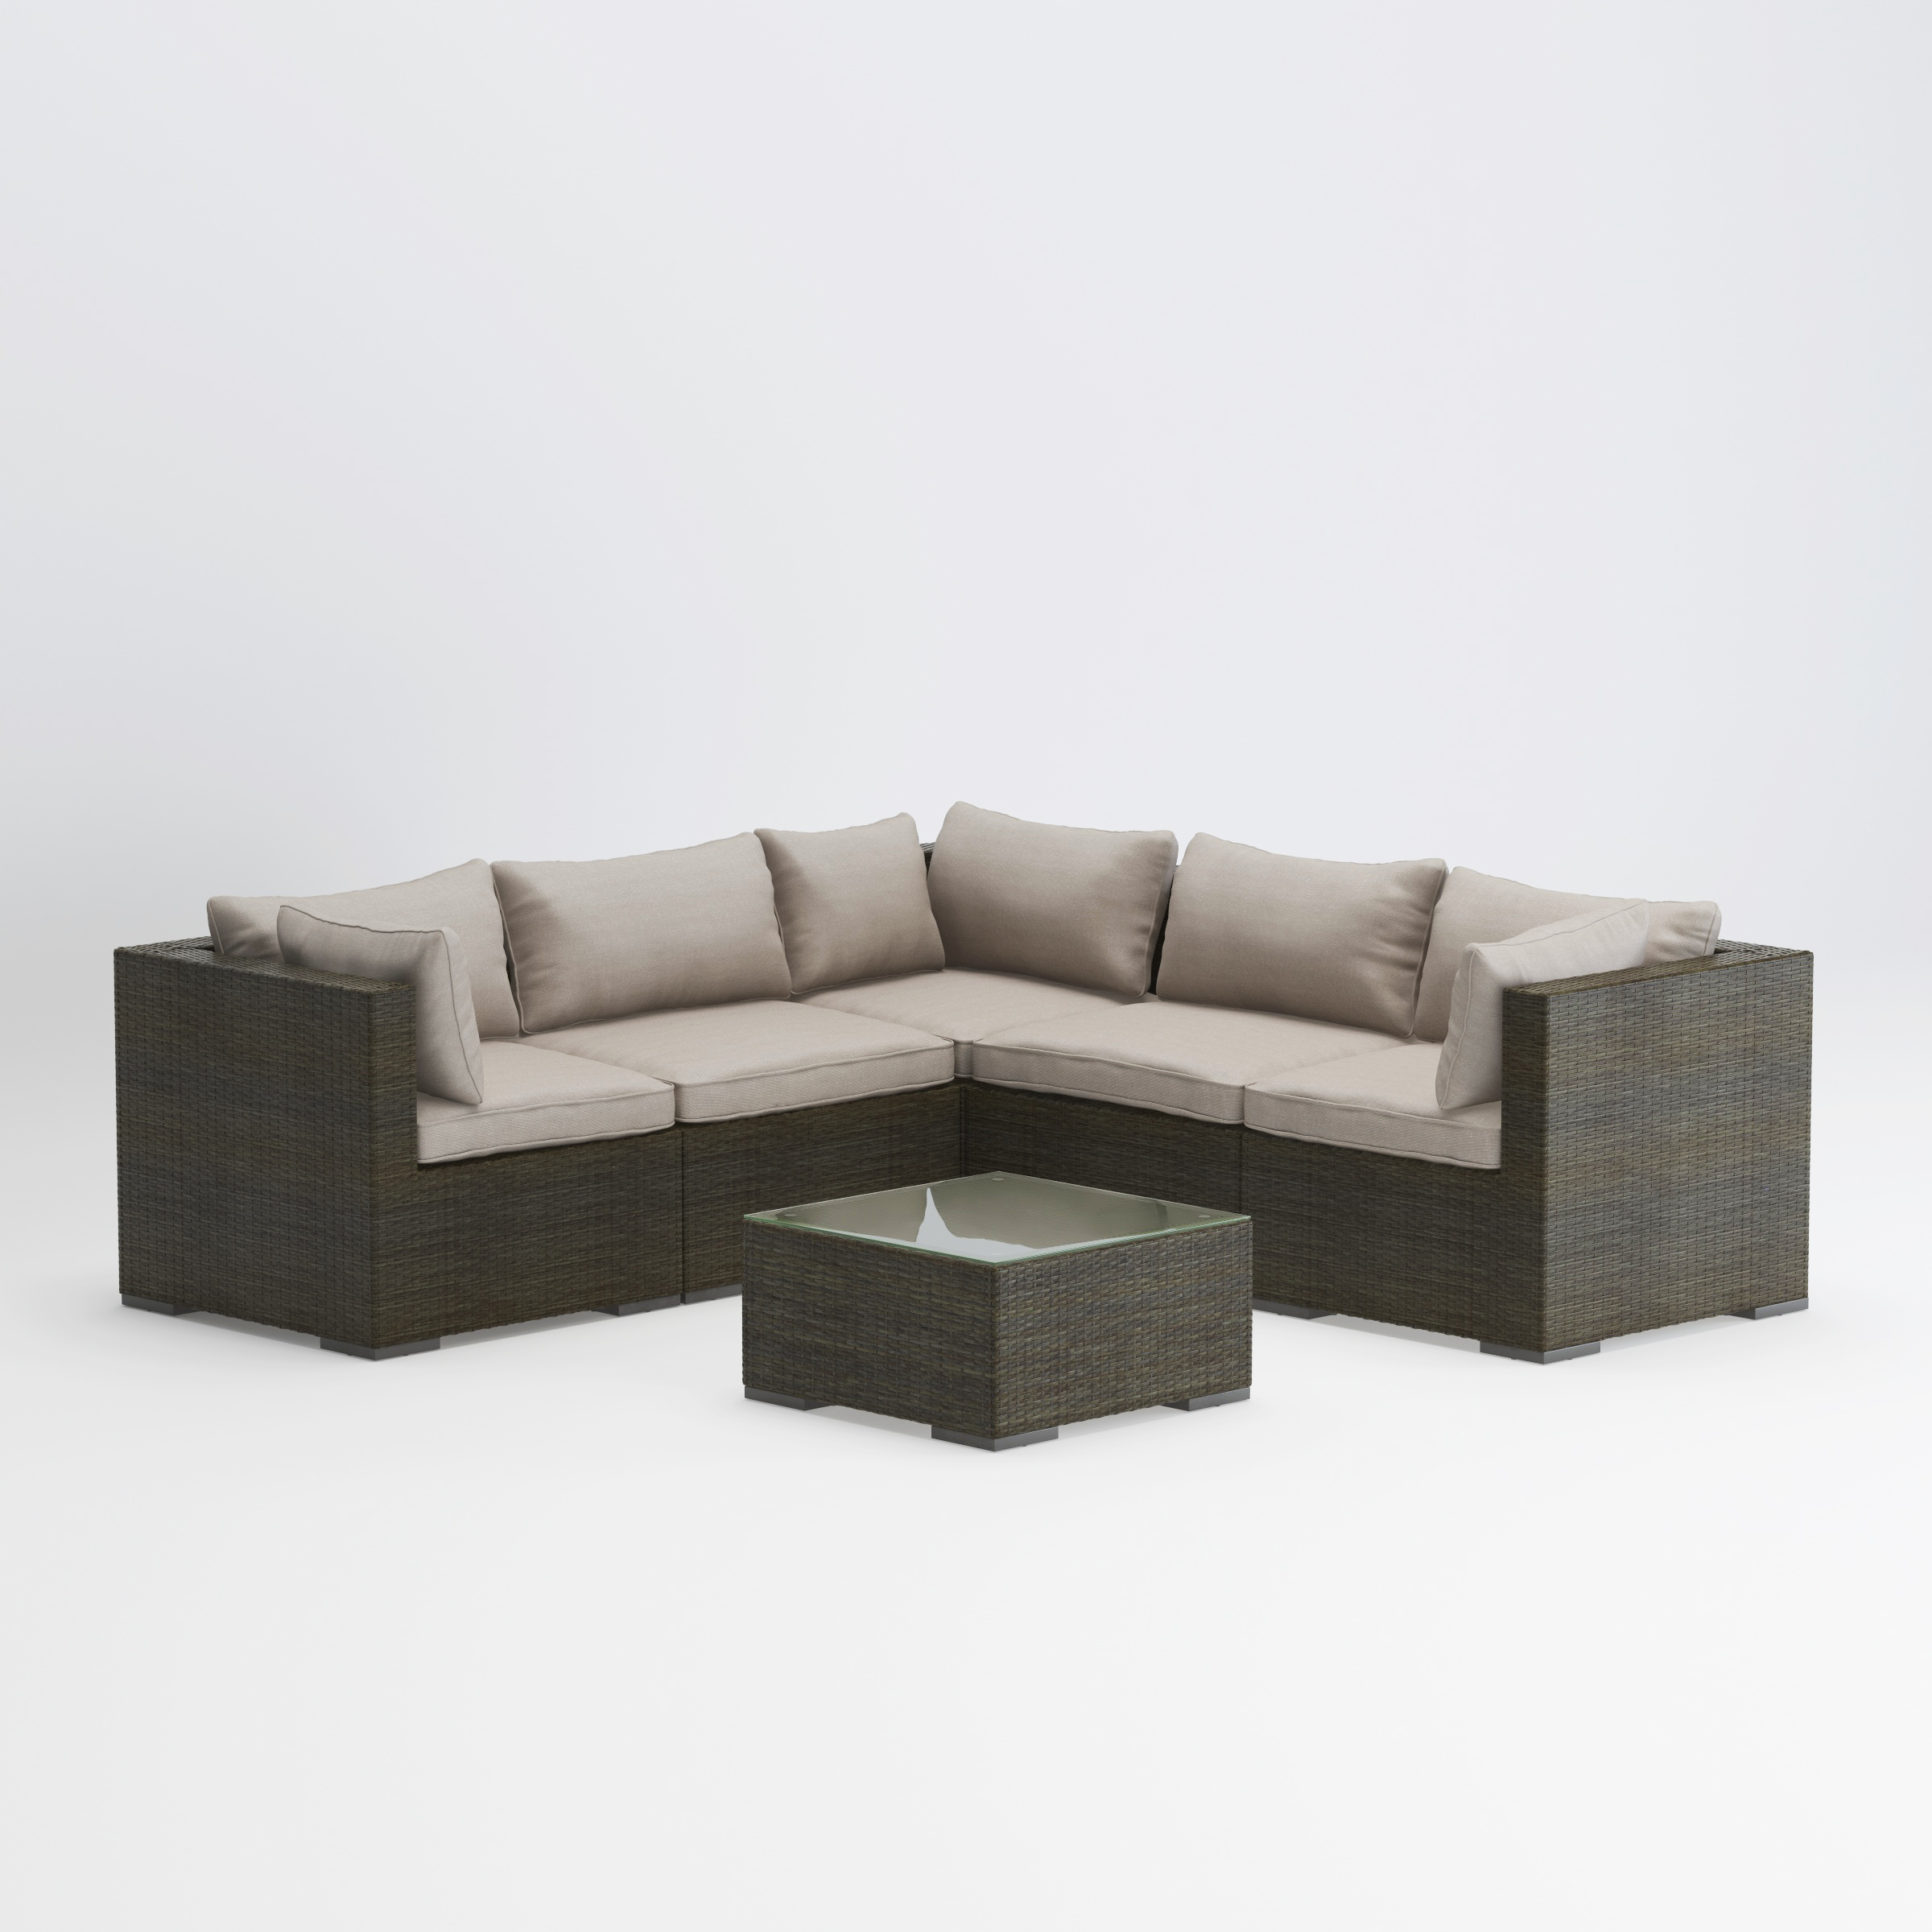 Balkene Home Sino Outdoor Patio Sectional Set in Resin Wicker with All Weather Cushions